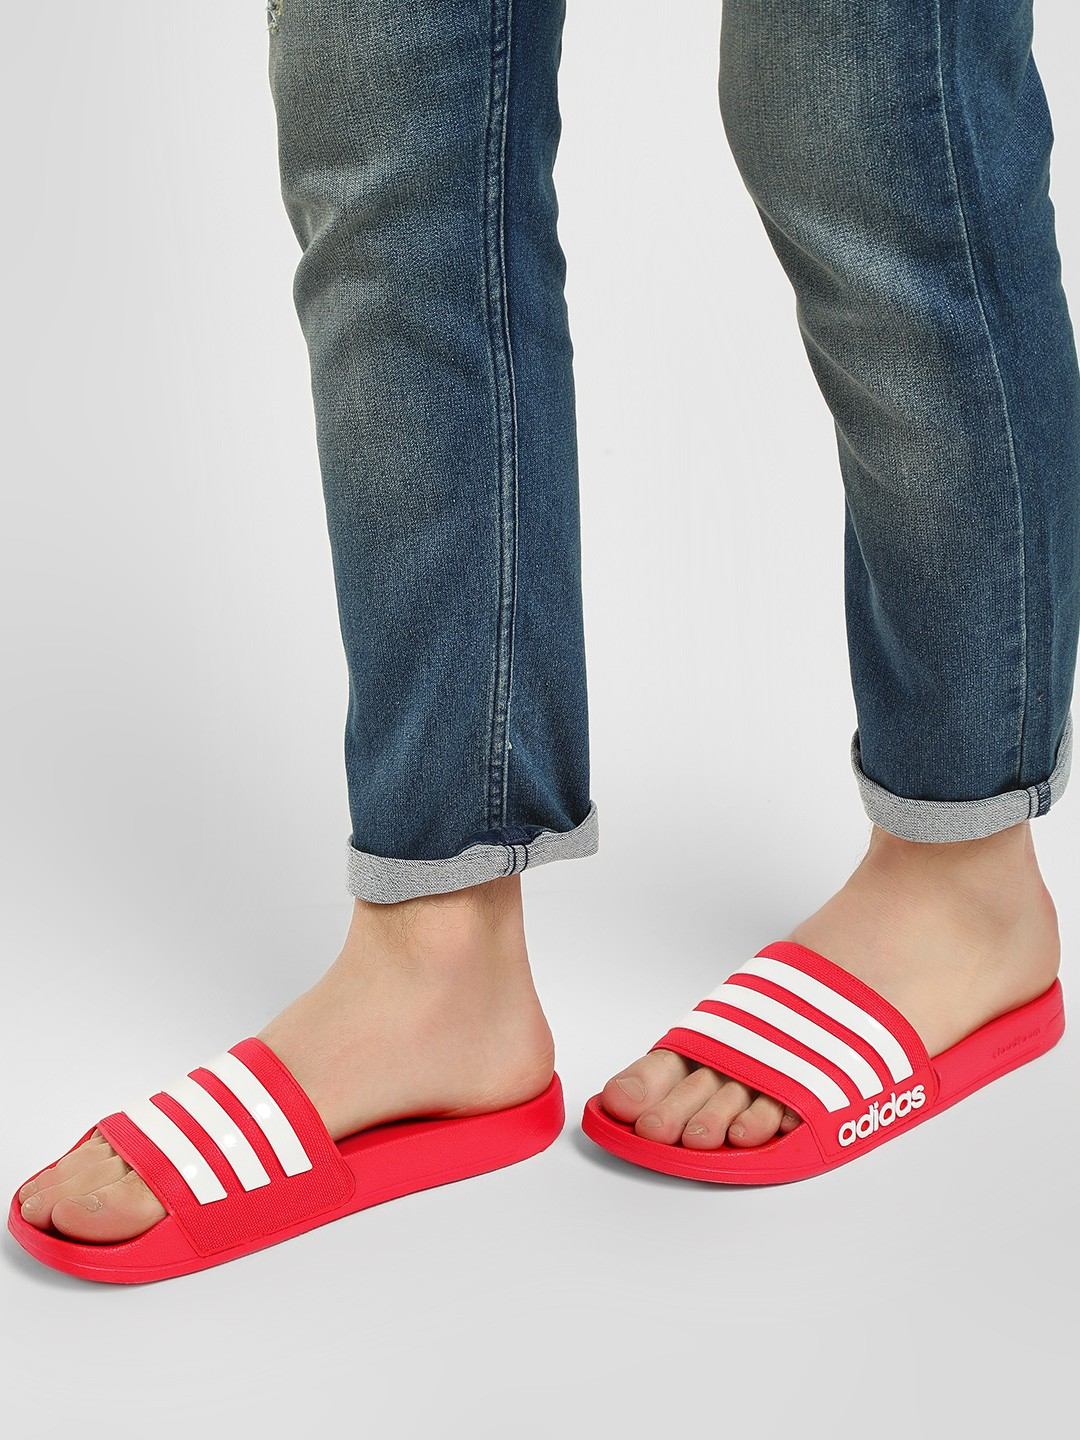 Adidas Red Adilette Shower Slides 1